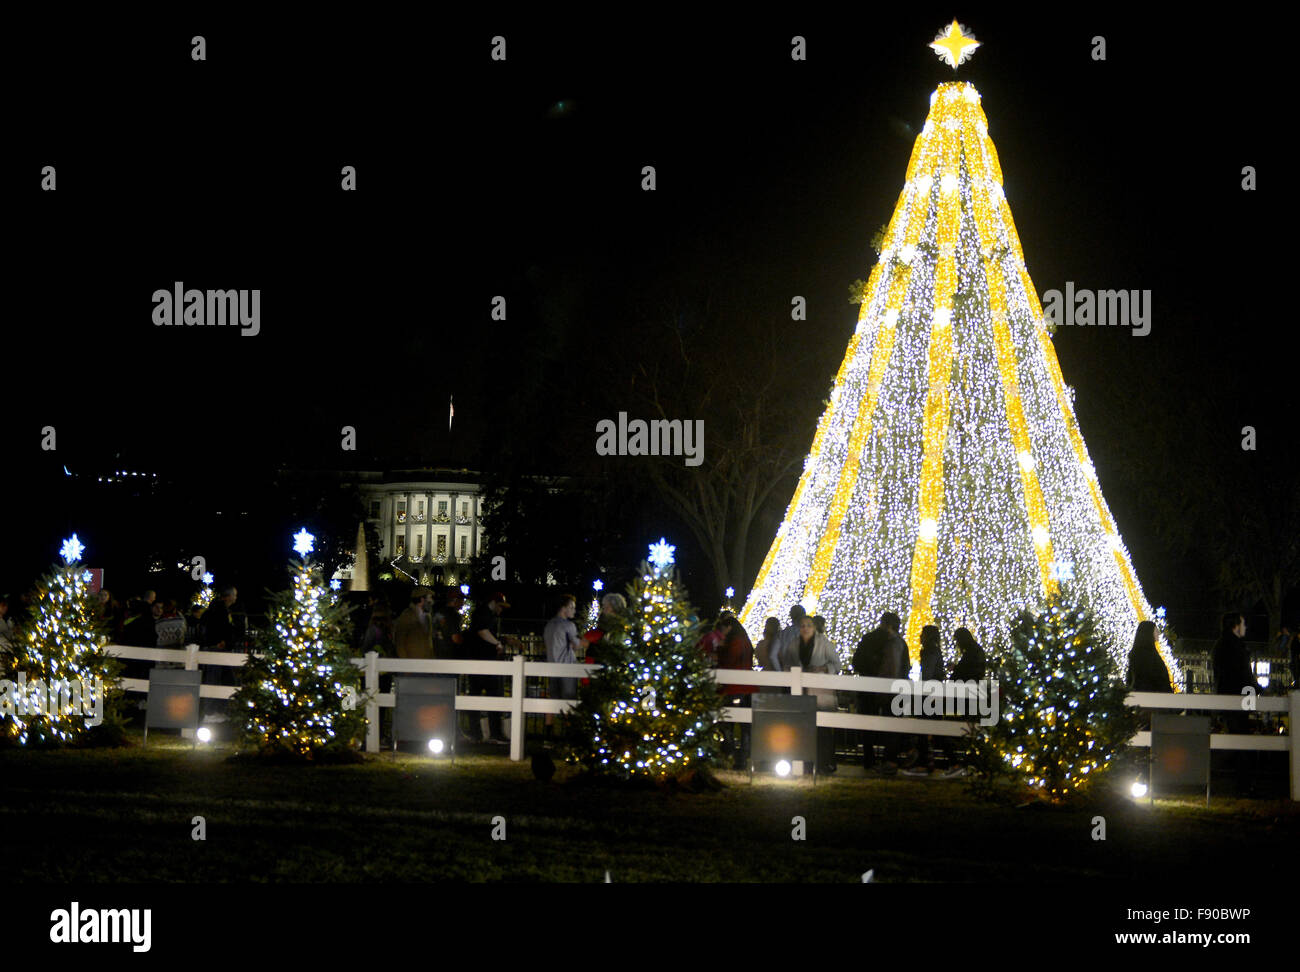 Washington, DC, USA. 11th Dec, 2015. 20151211 - The White House Christmas Tree is seen during the evening in Washington. Stock Photo